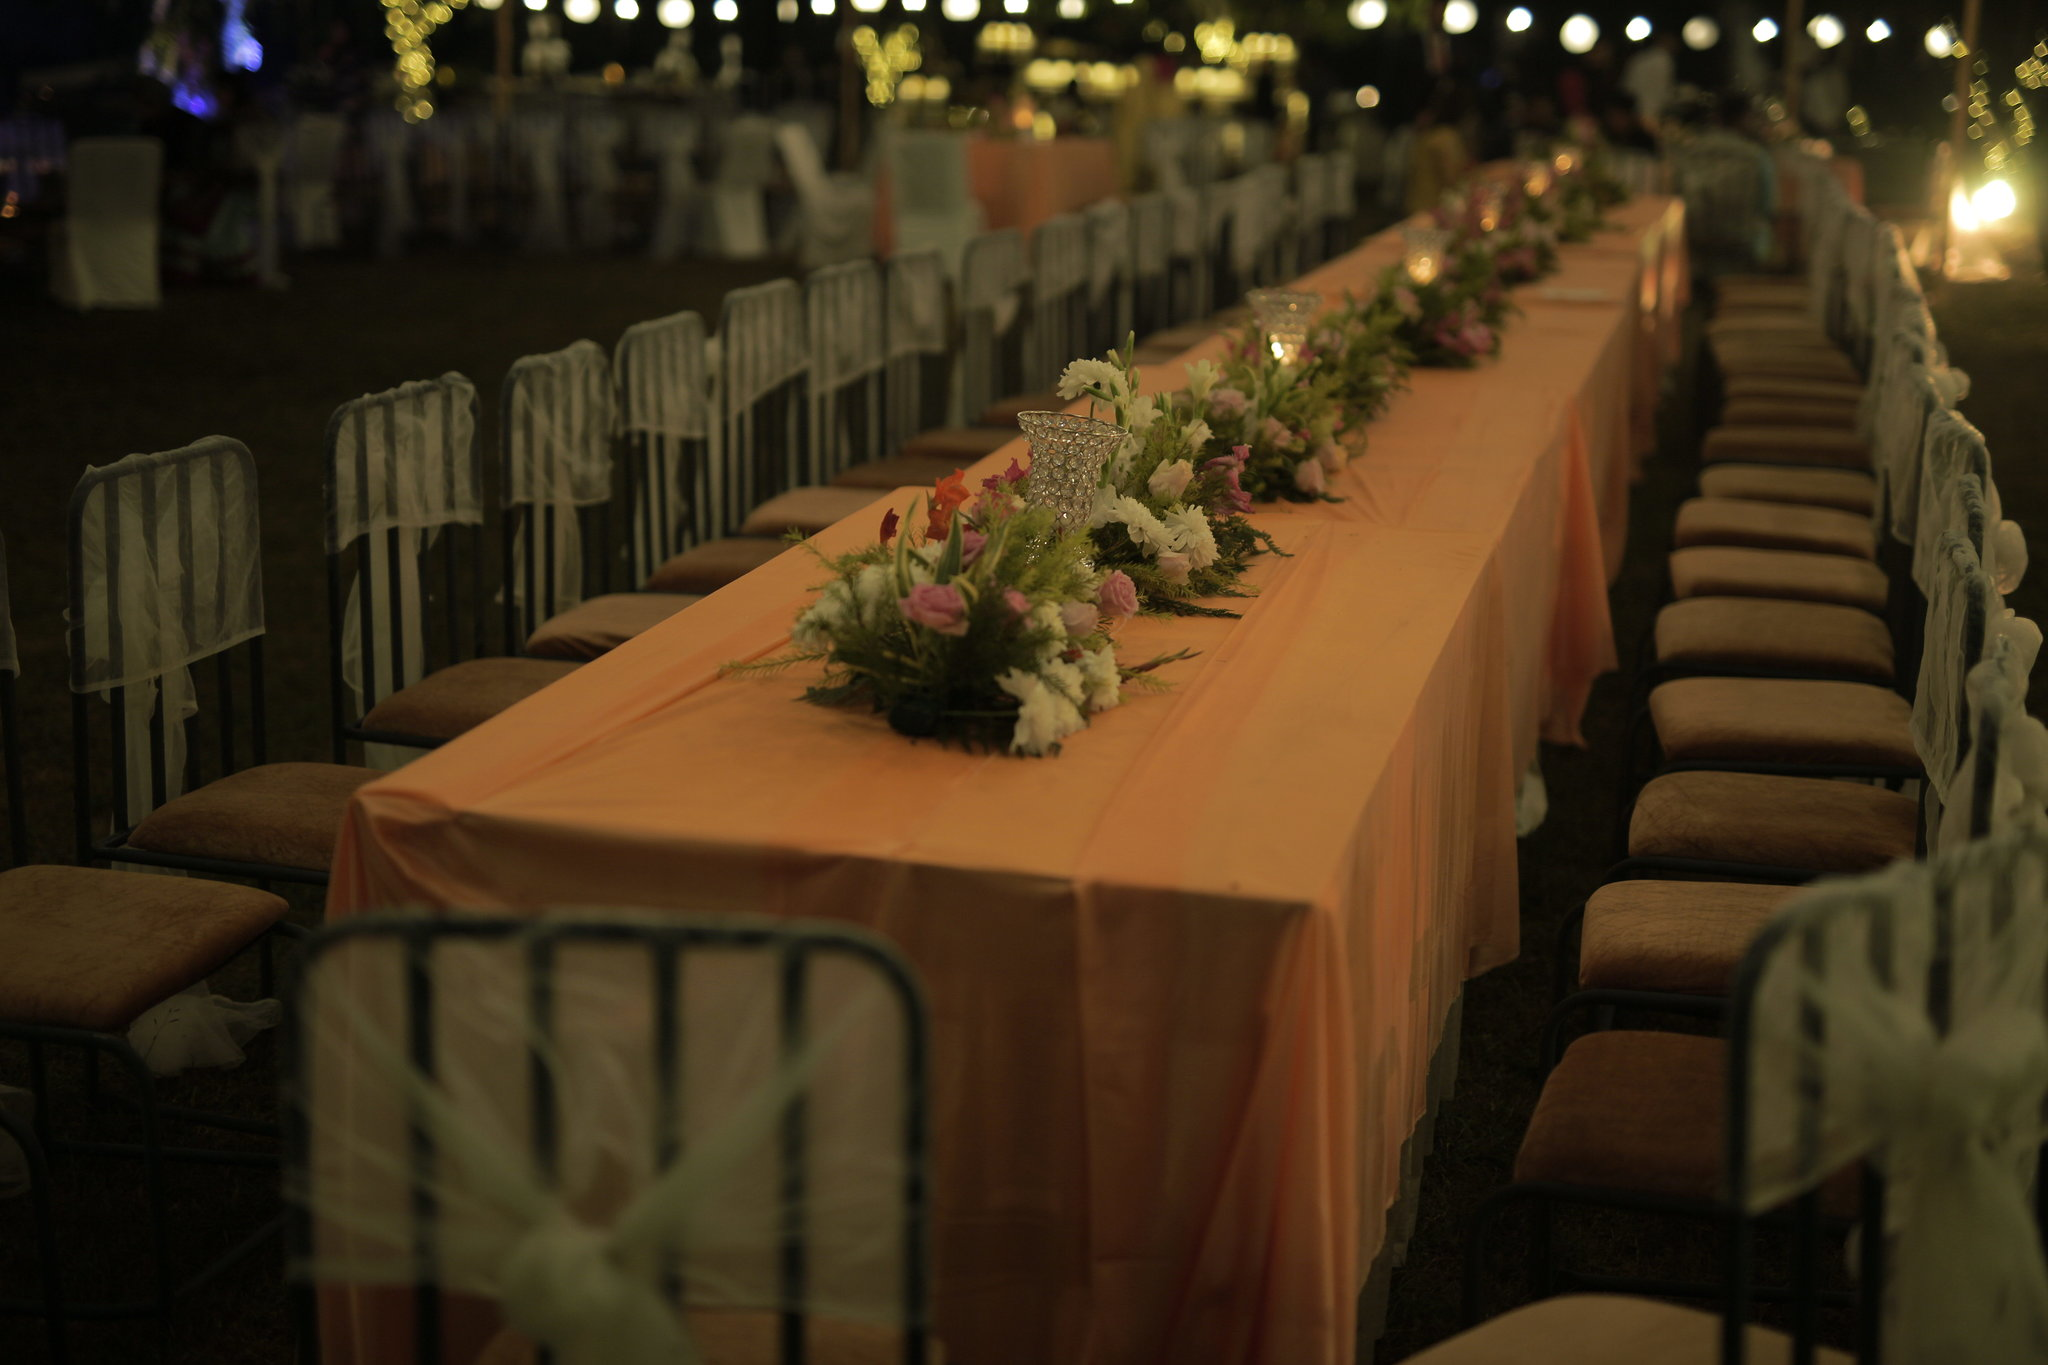 Table and chair decorations